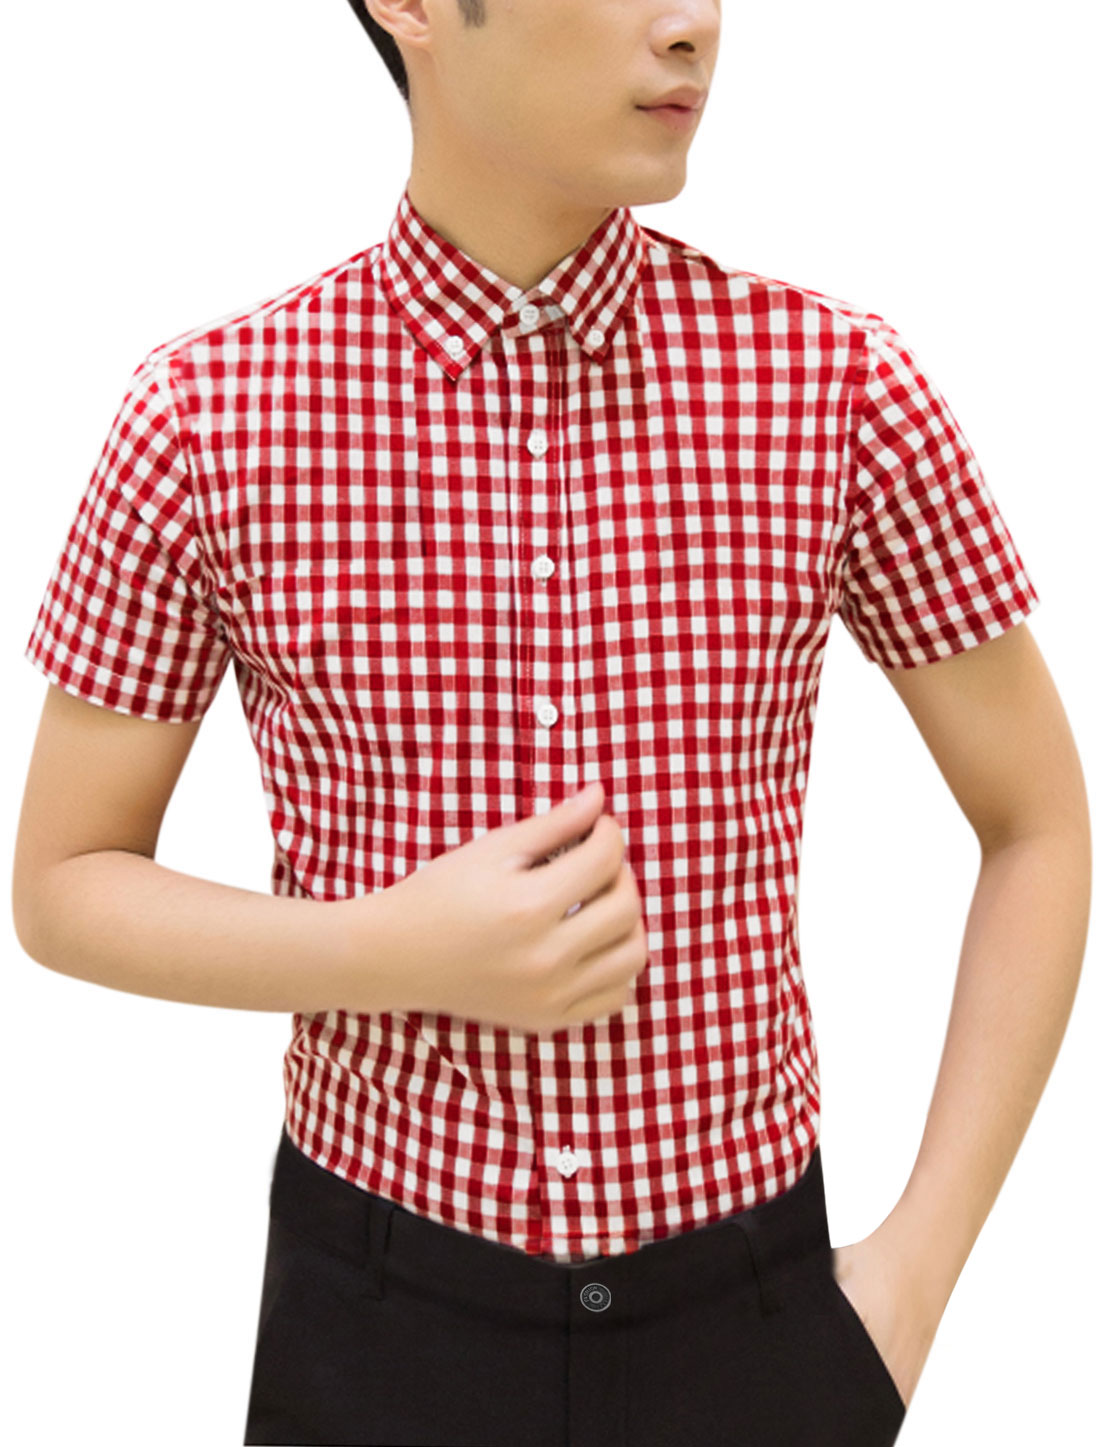 Man Plaids Short Sleeves Button Closed Point Collar Shirt Red White M